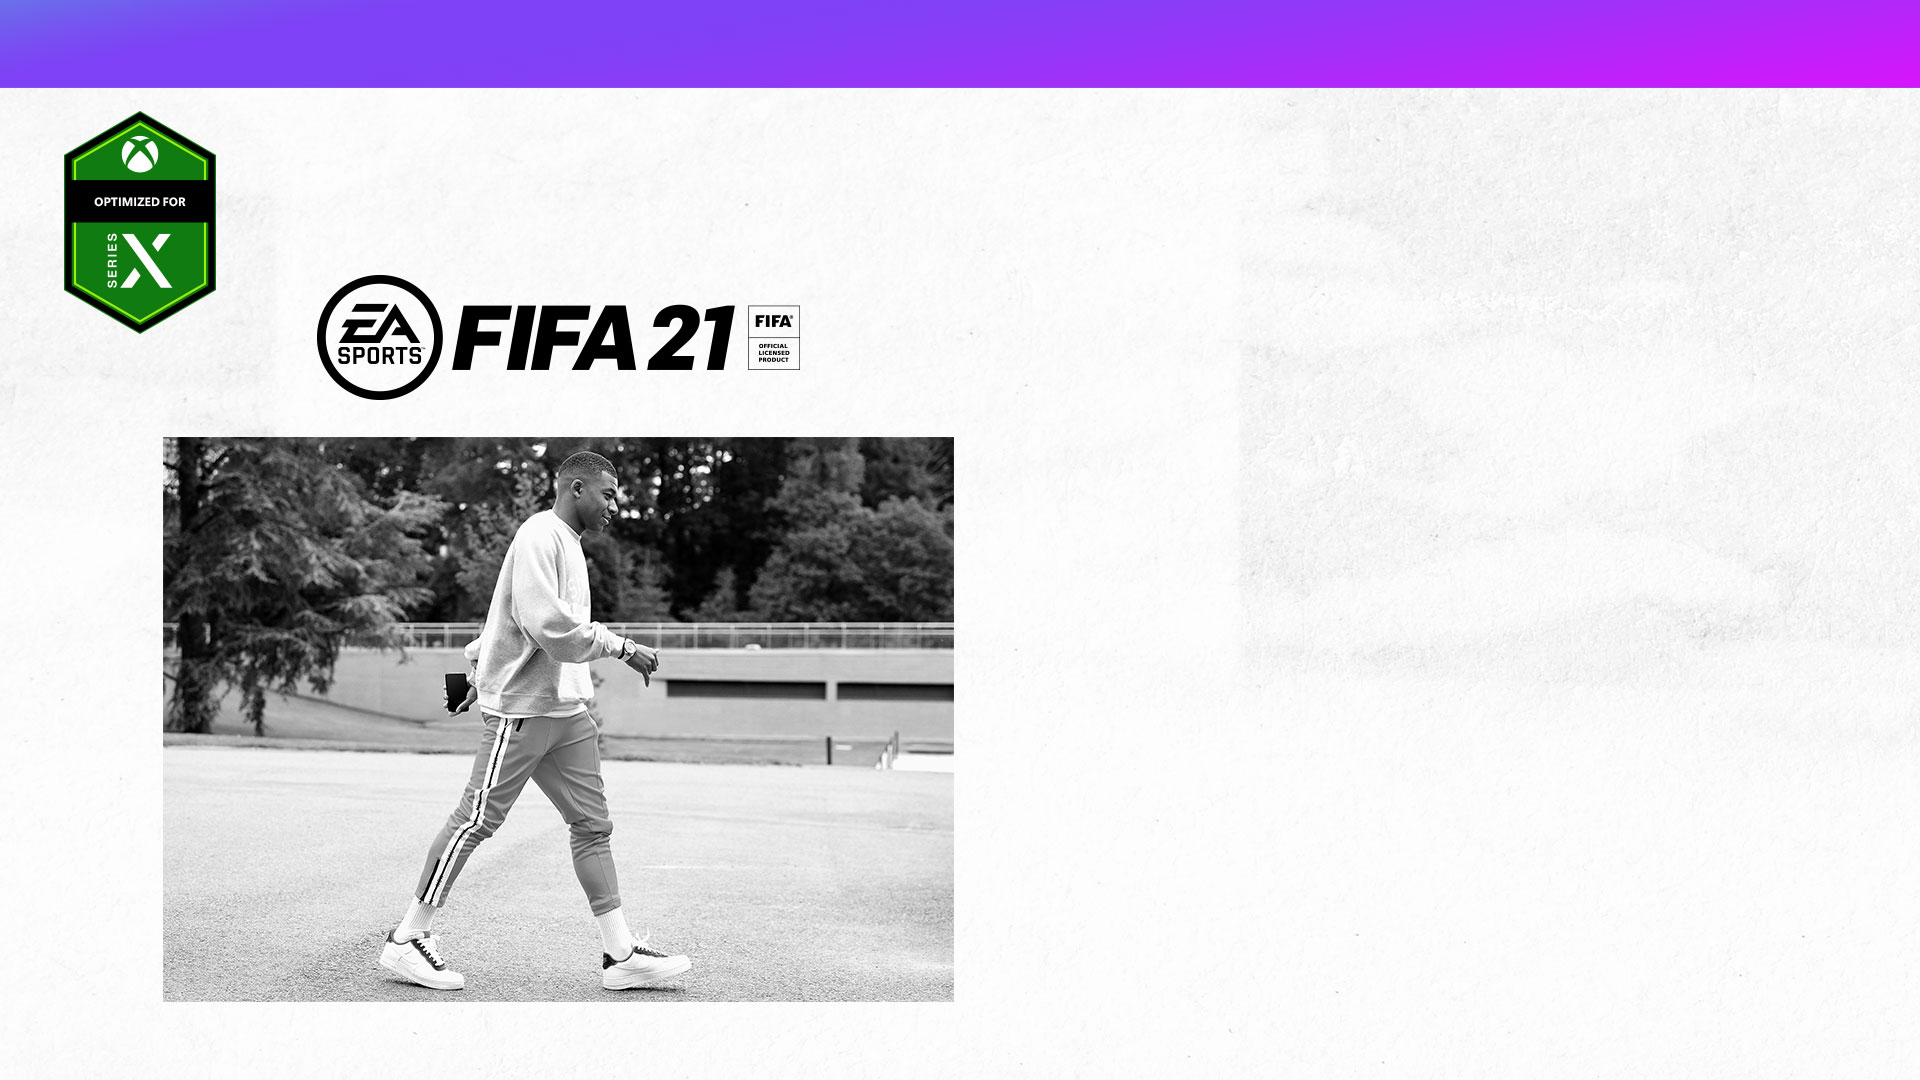 Optimized for Xbox Series X, EA Sports logo, FIFA 21, FIFA Official Licensed Product, Kylian Mbappé walking